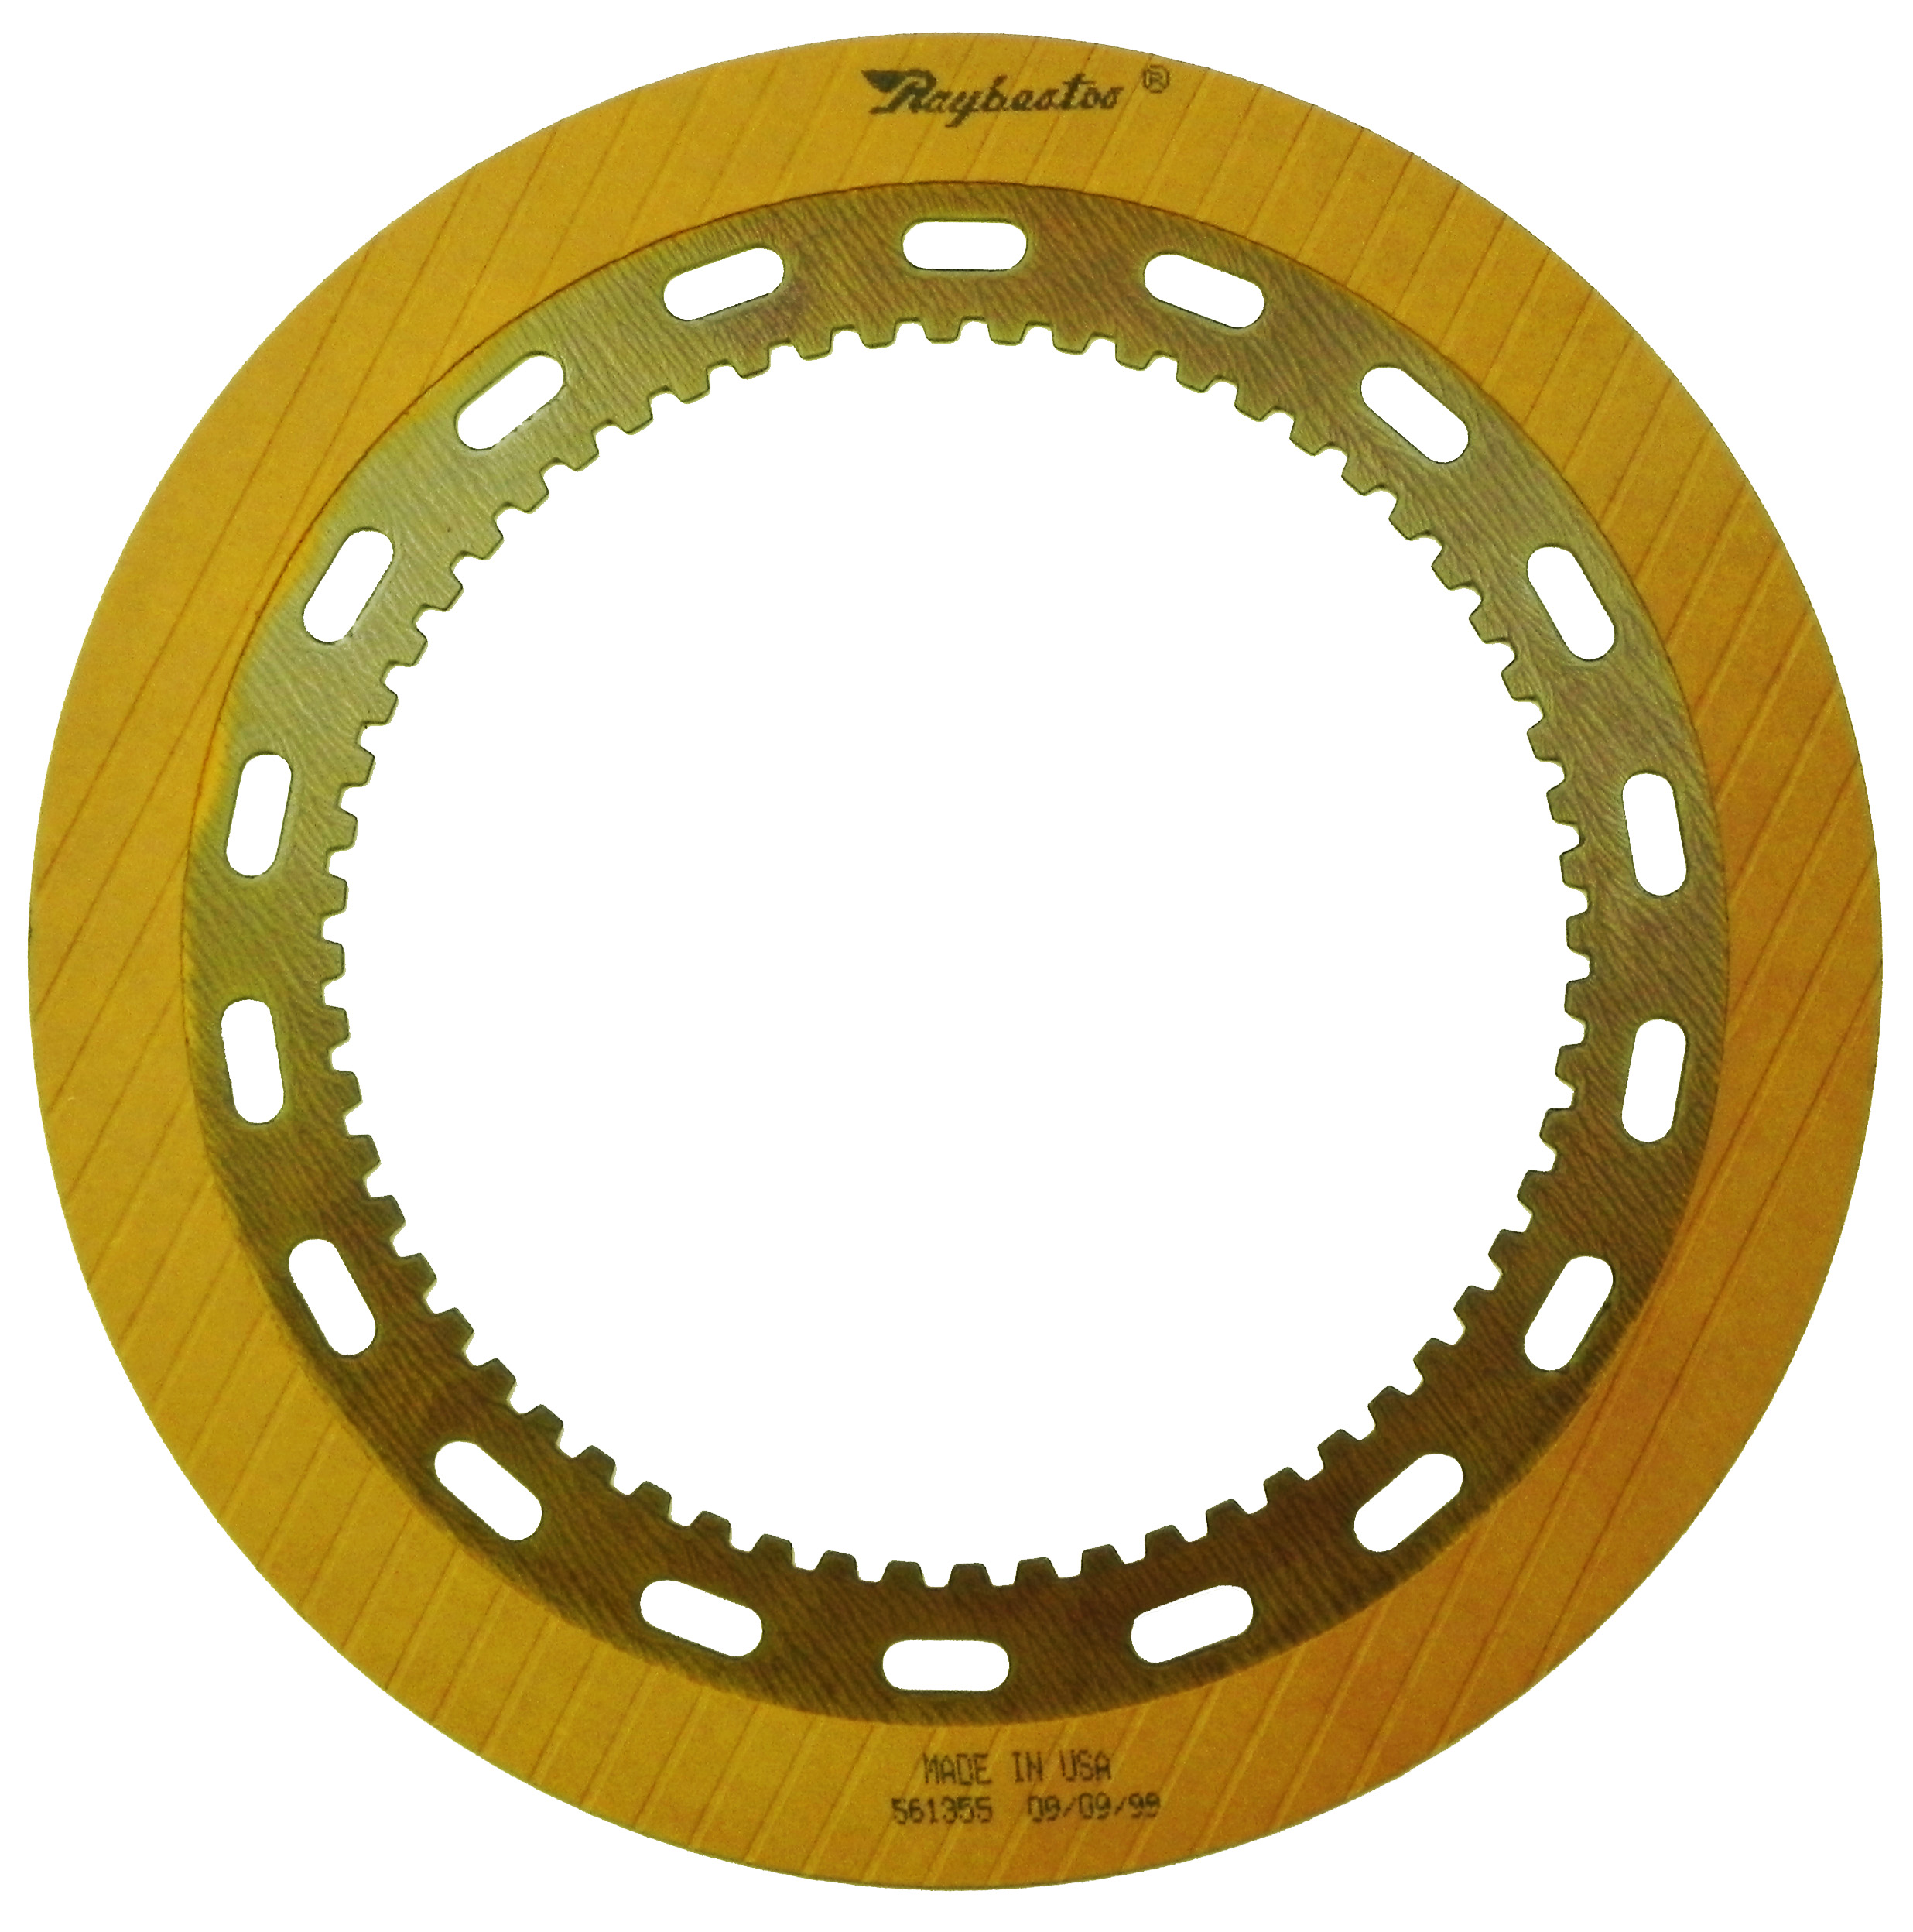 R561355 | 1969-1986 Friction Clutch Plate OE Replacement Intermediate